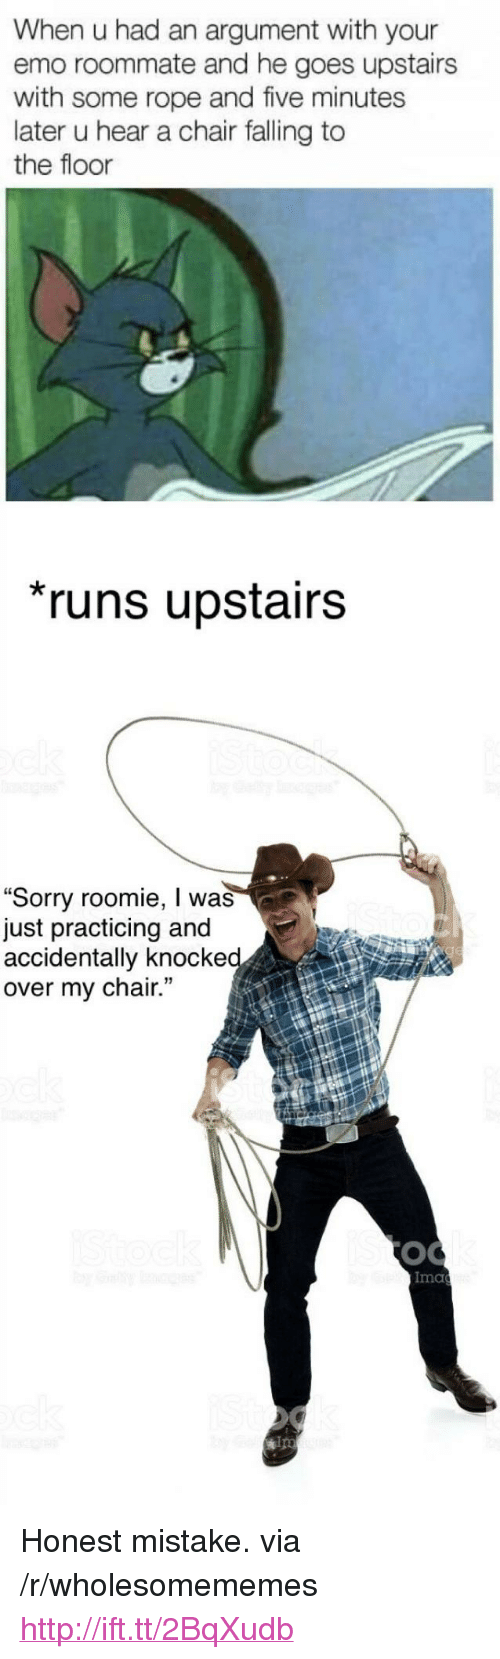 """ips: When u had an argument with your  emo roommate and he goes upstairs  with some rope and five minutes  later u hear a chair falling to  the floor  runs upstairs  """"Sorry roomie, I was  just practicing and  accidentally knocke  over my chair.  Ima  ips <p>Honest mistake. via /r/wholesomememes <a href=""""http://ift.tt/2BqXudb"""">http://ift.tt/2BqXudb</a></p>"""